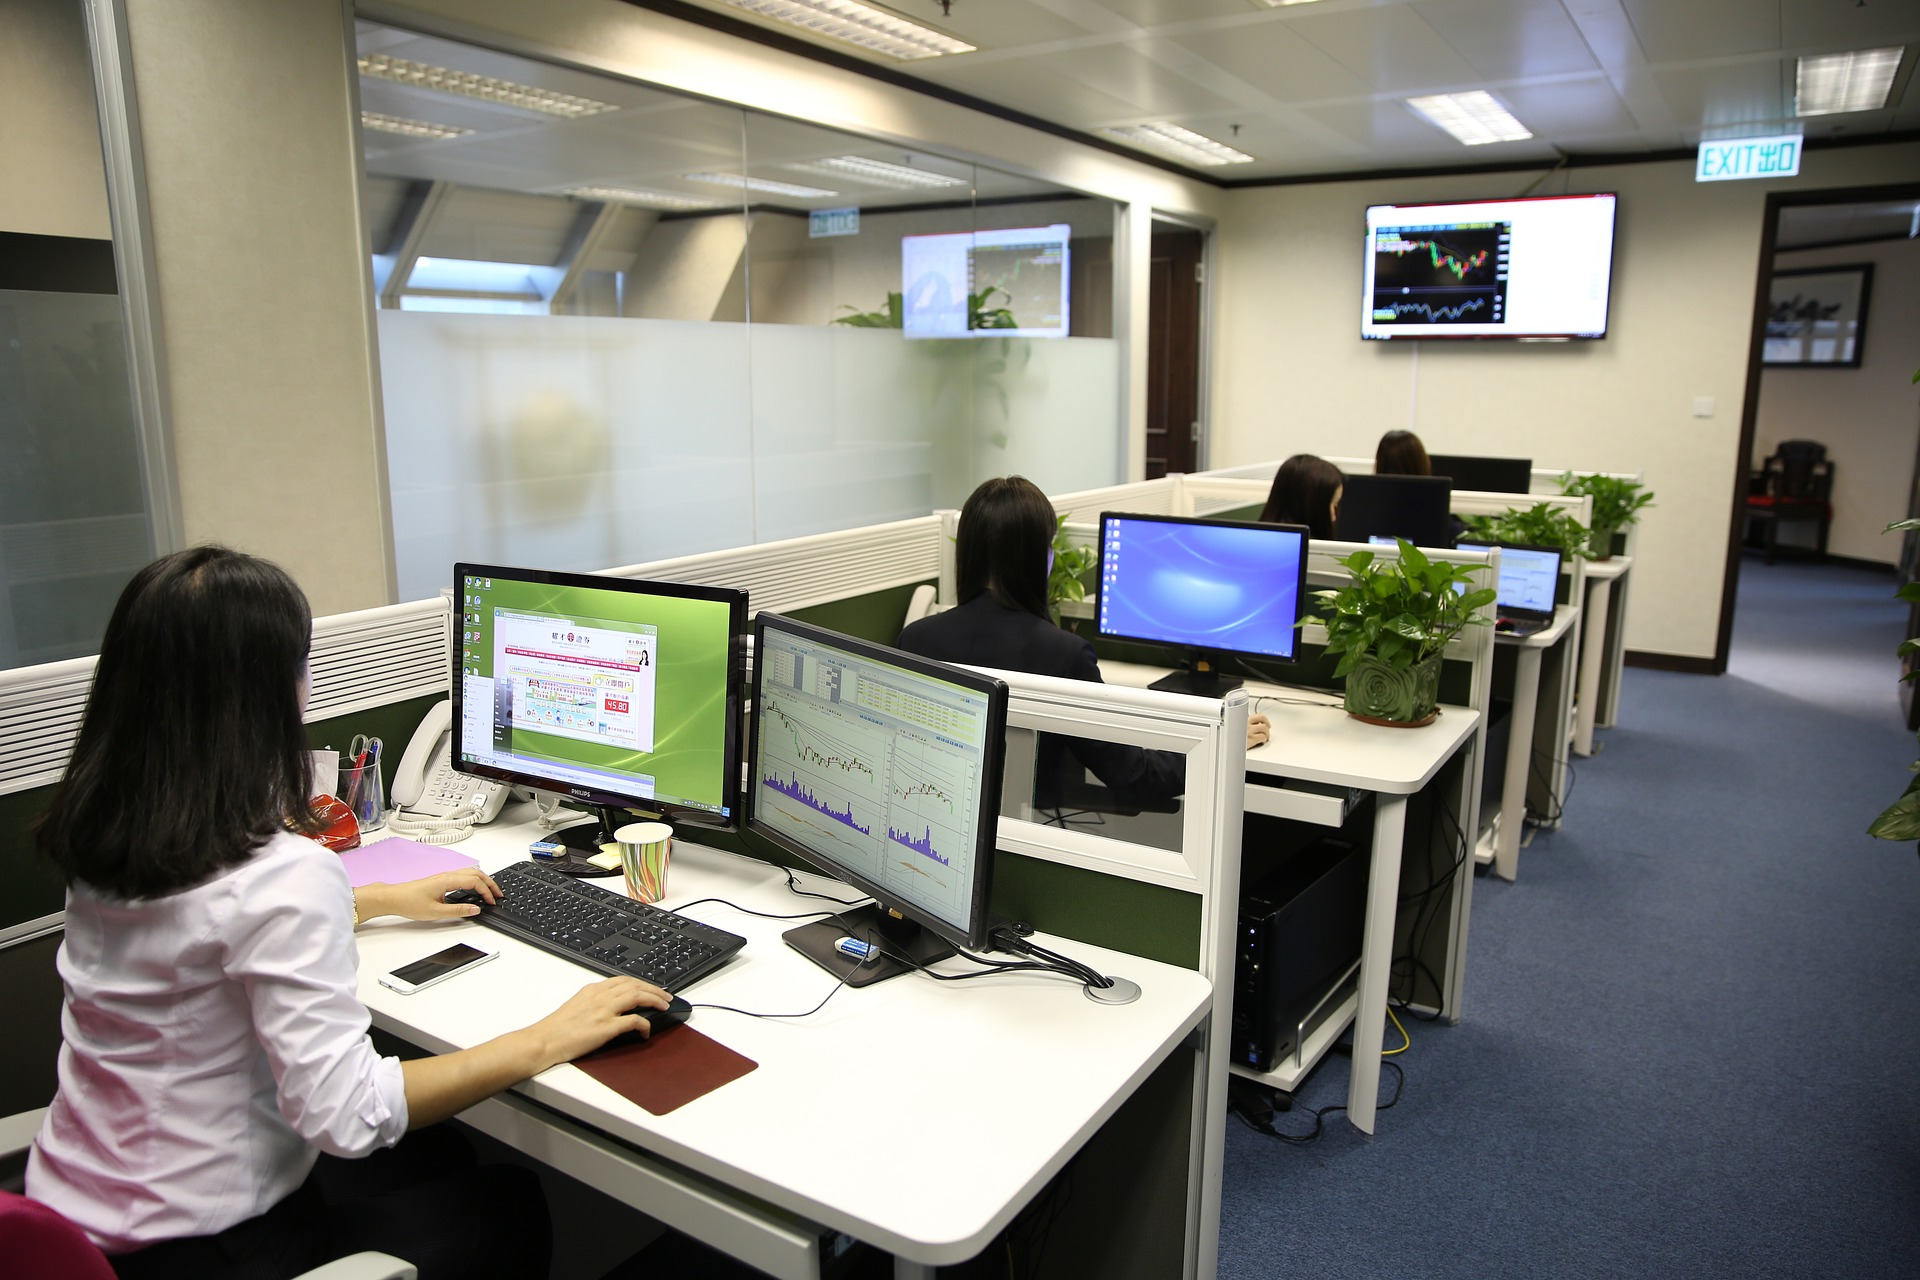 Call center and cubicles